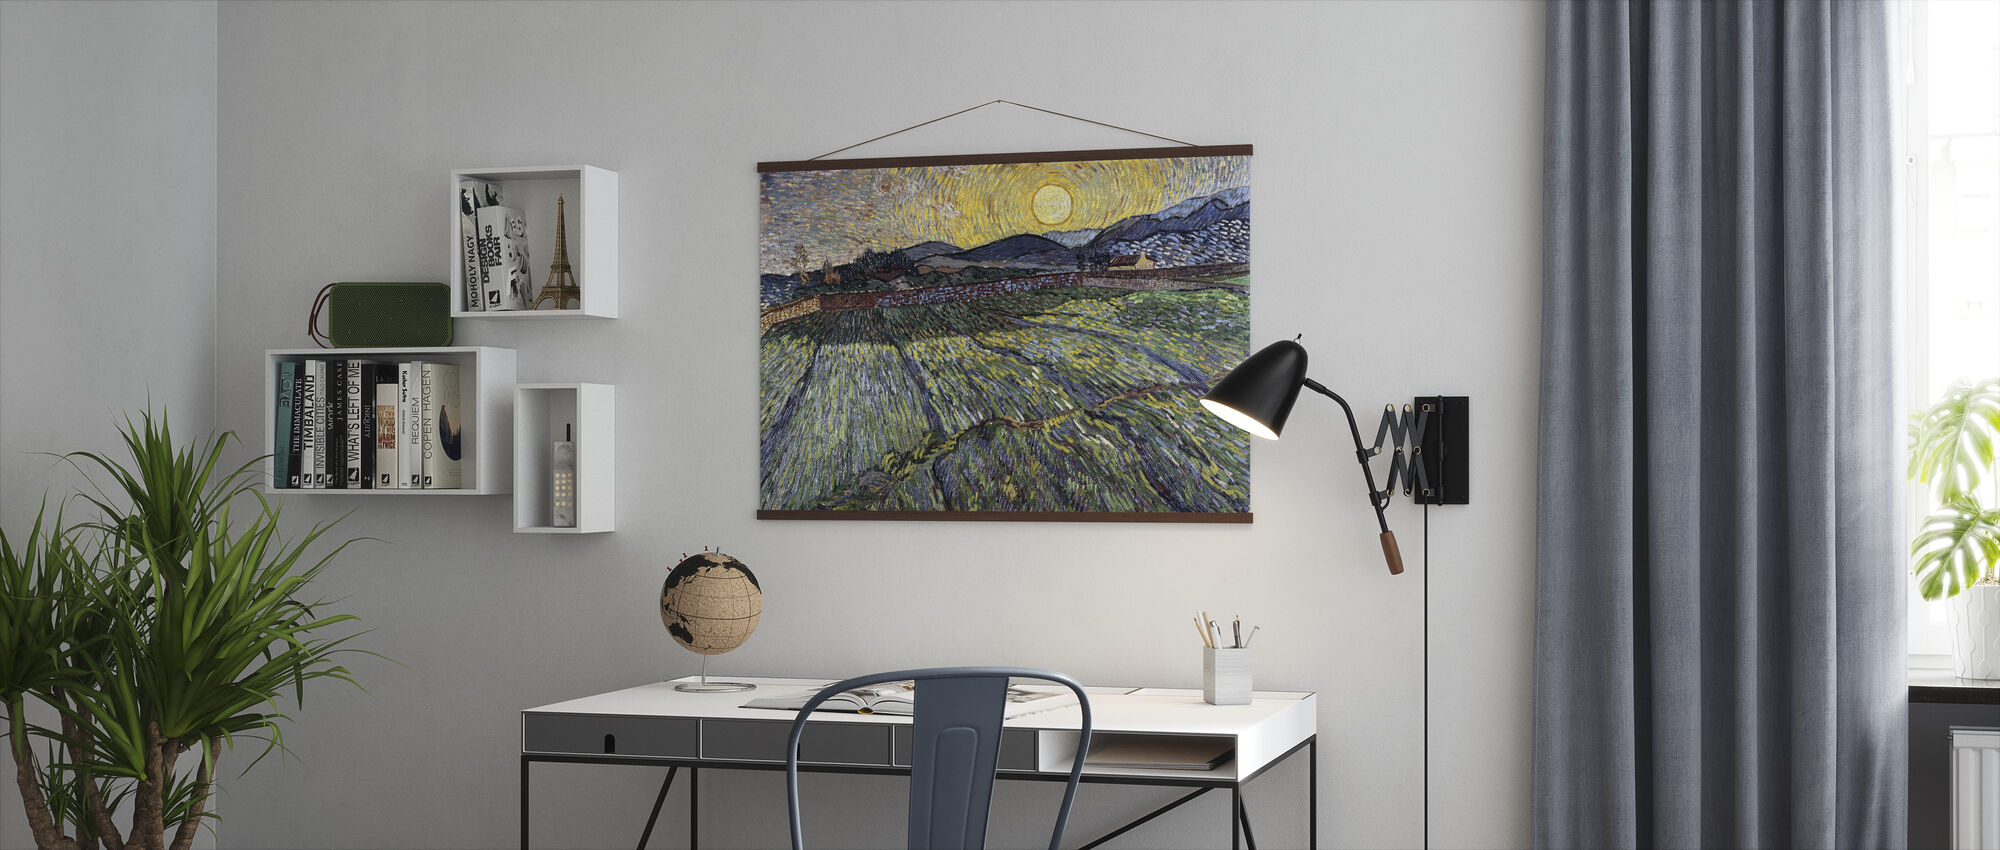 Enclosed Field with Rising Sun - Vincent van Gogh - Poster - Office